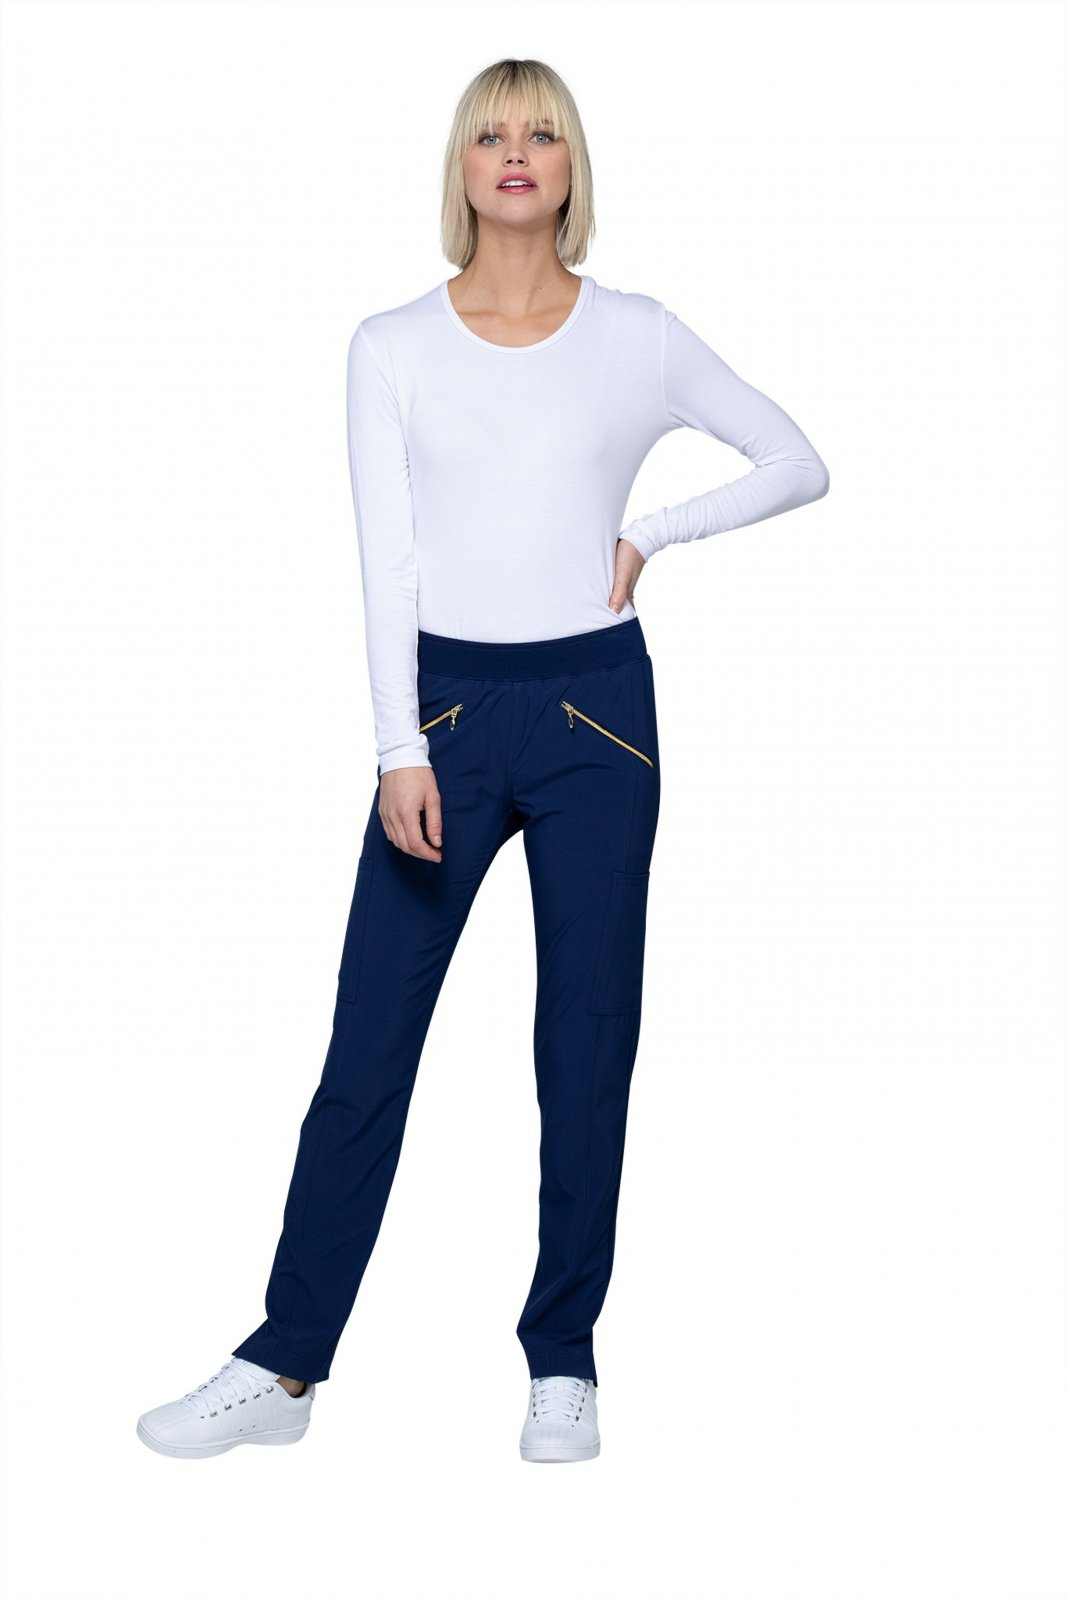 HS065 Mid Rise Pull-on Pant - Navy